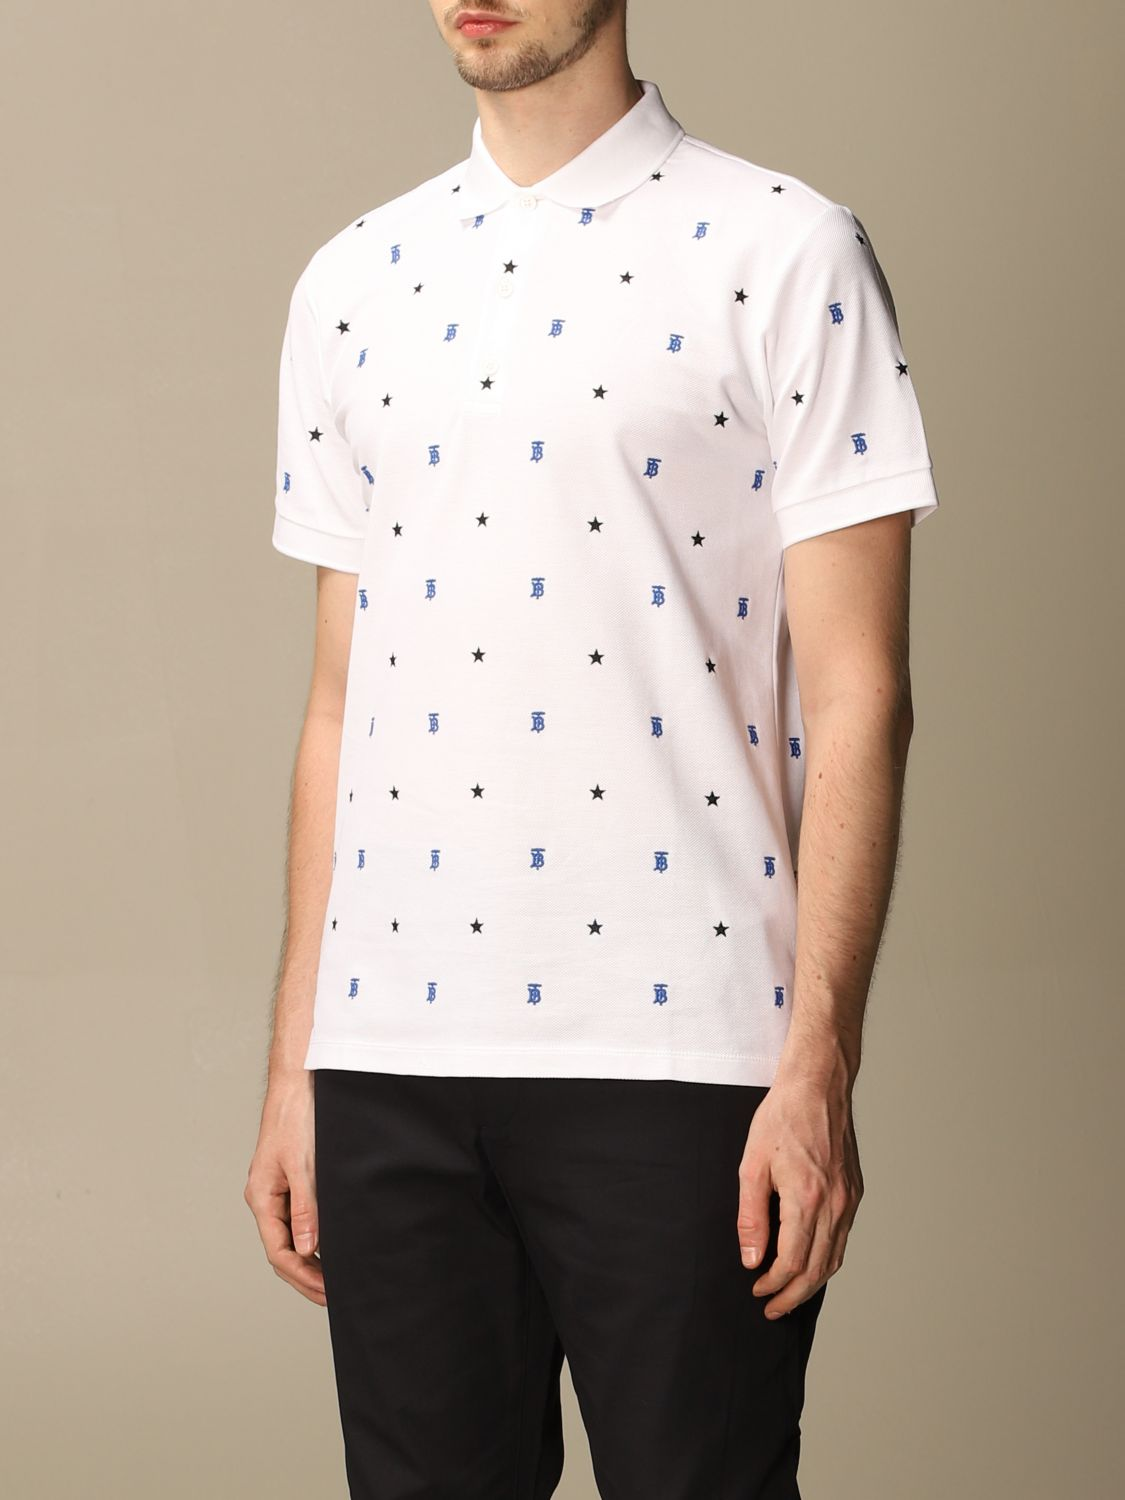 Polo shirt Burberry: Elsford Burberry polo shirt in cotton piqué with stars and TB monogram white 4